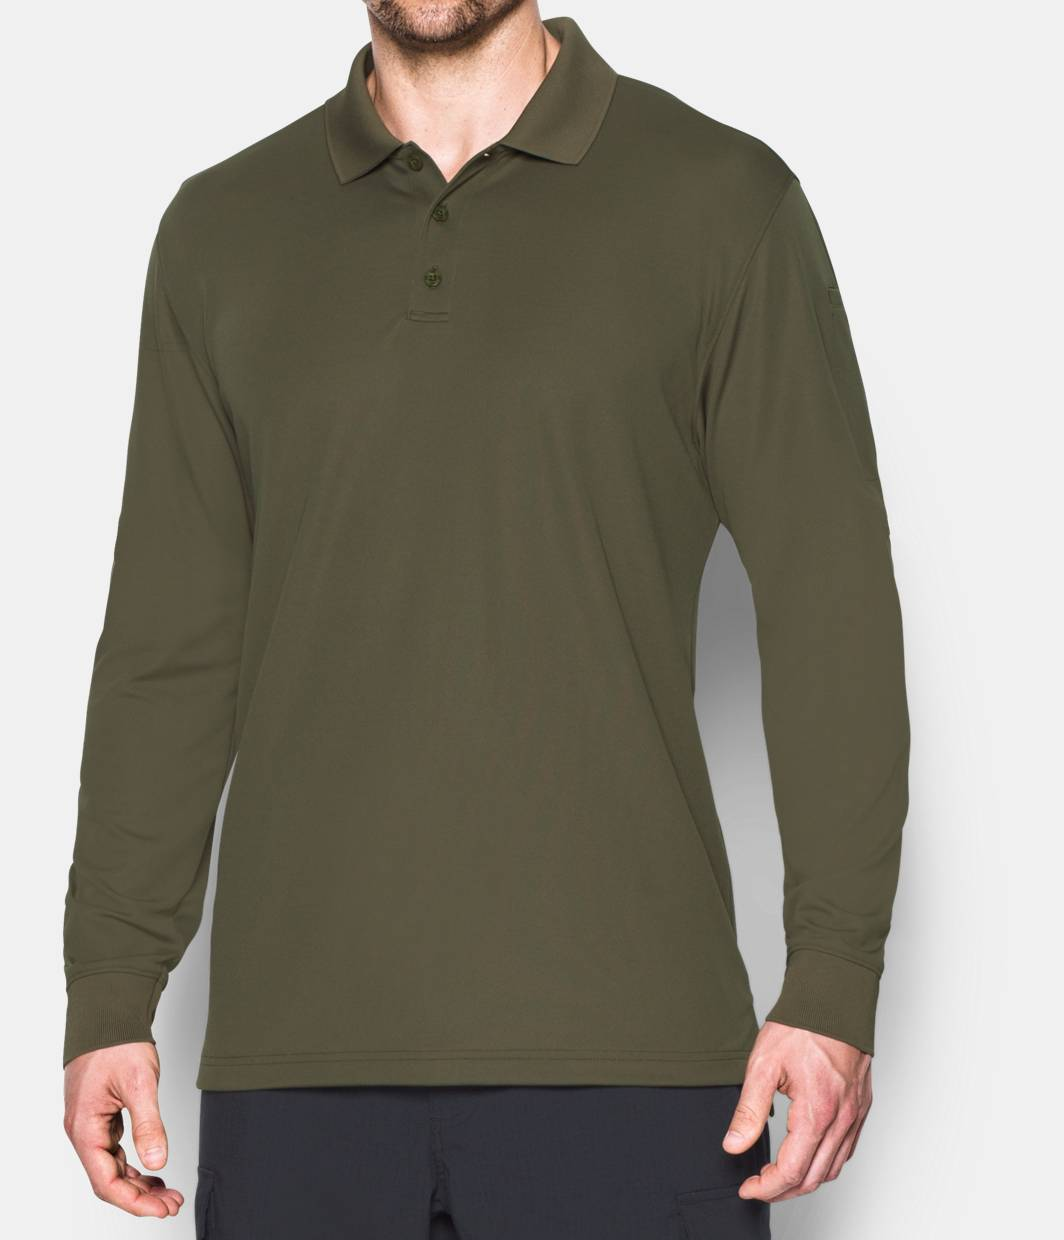 Men's UA Tactical Performance Long Sleeve Polo | Under Armour US